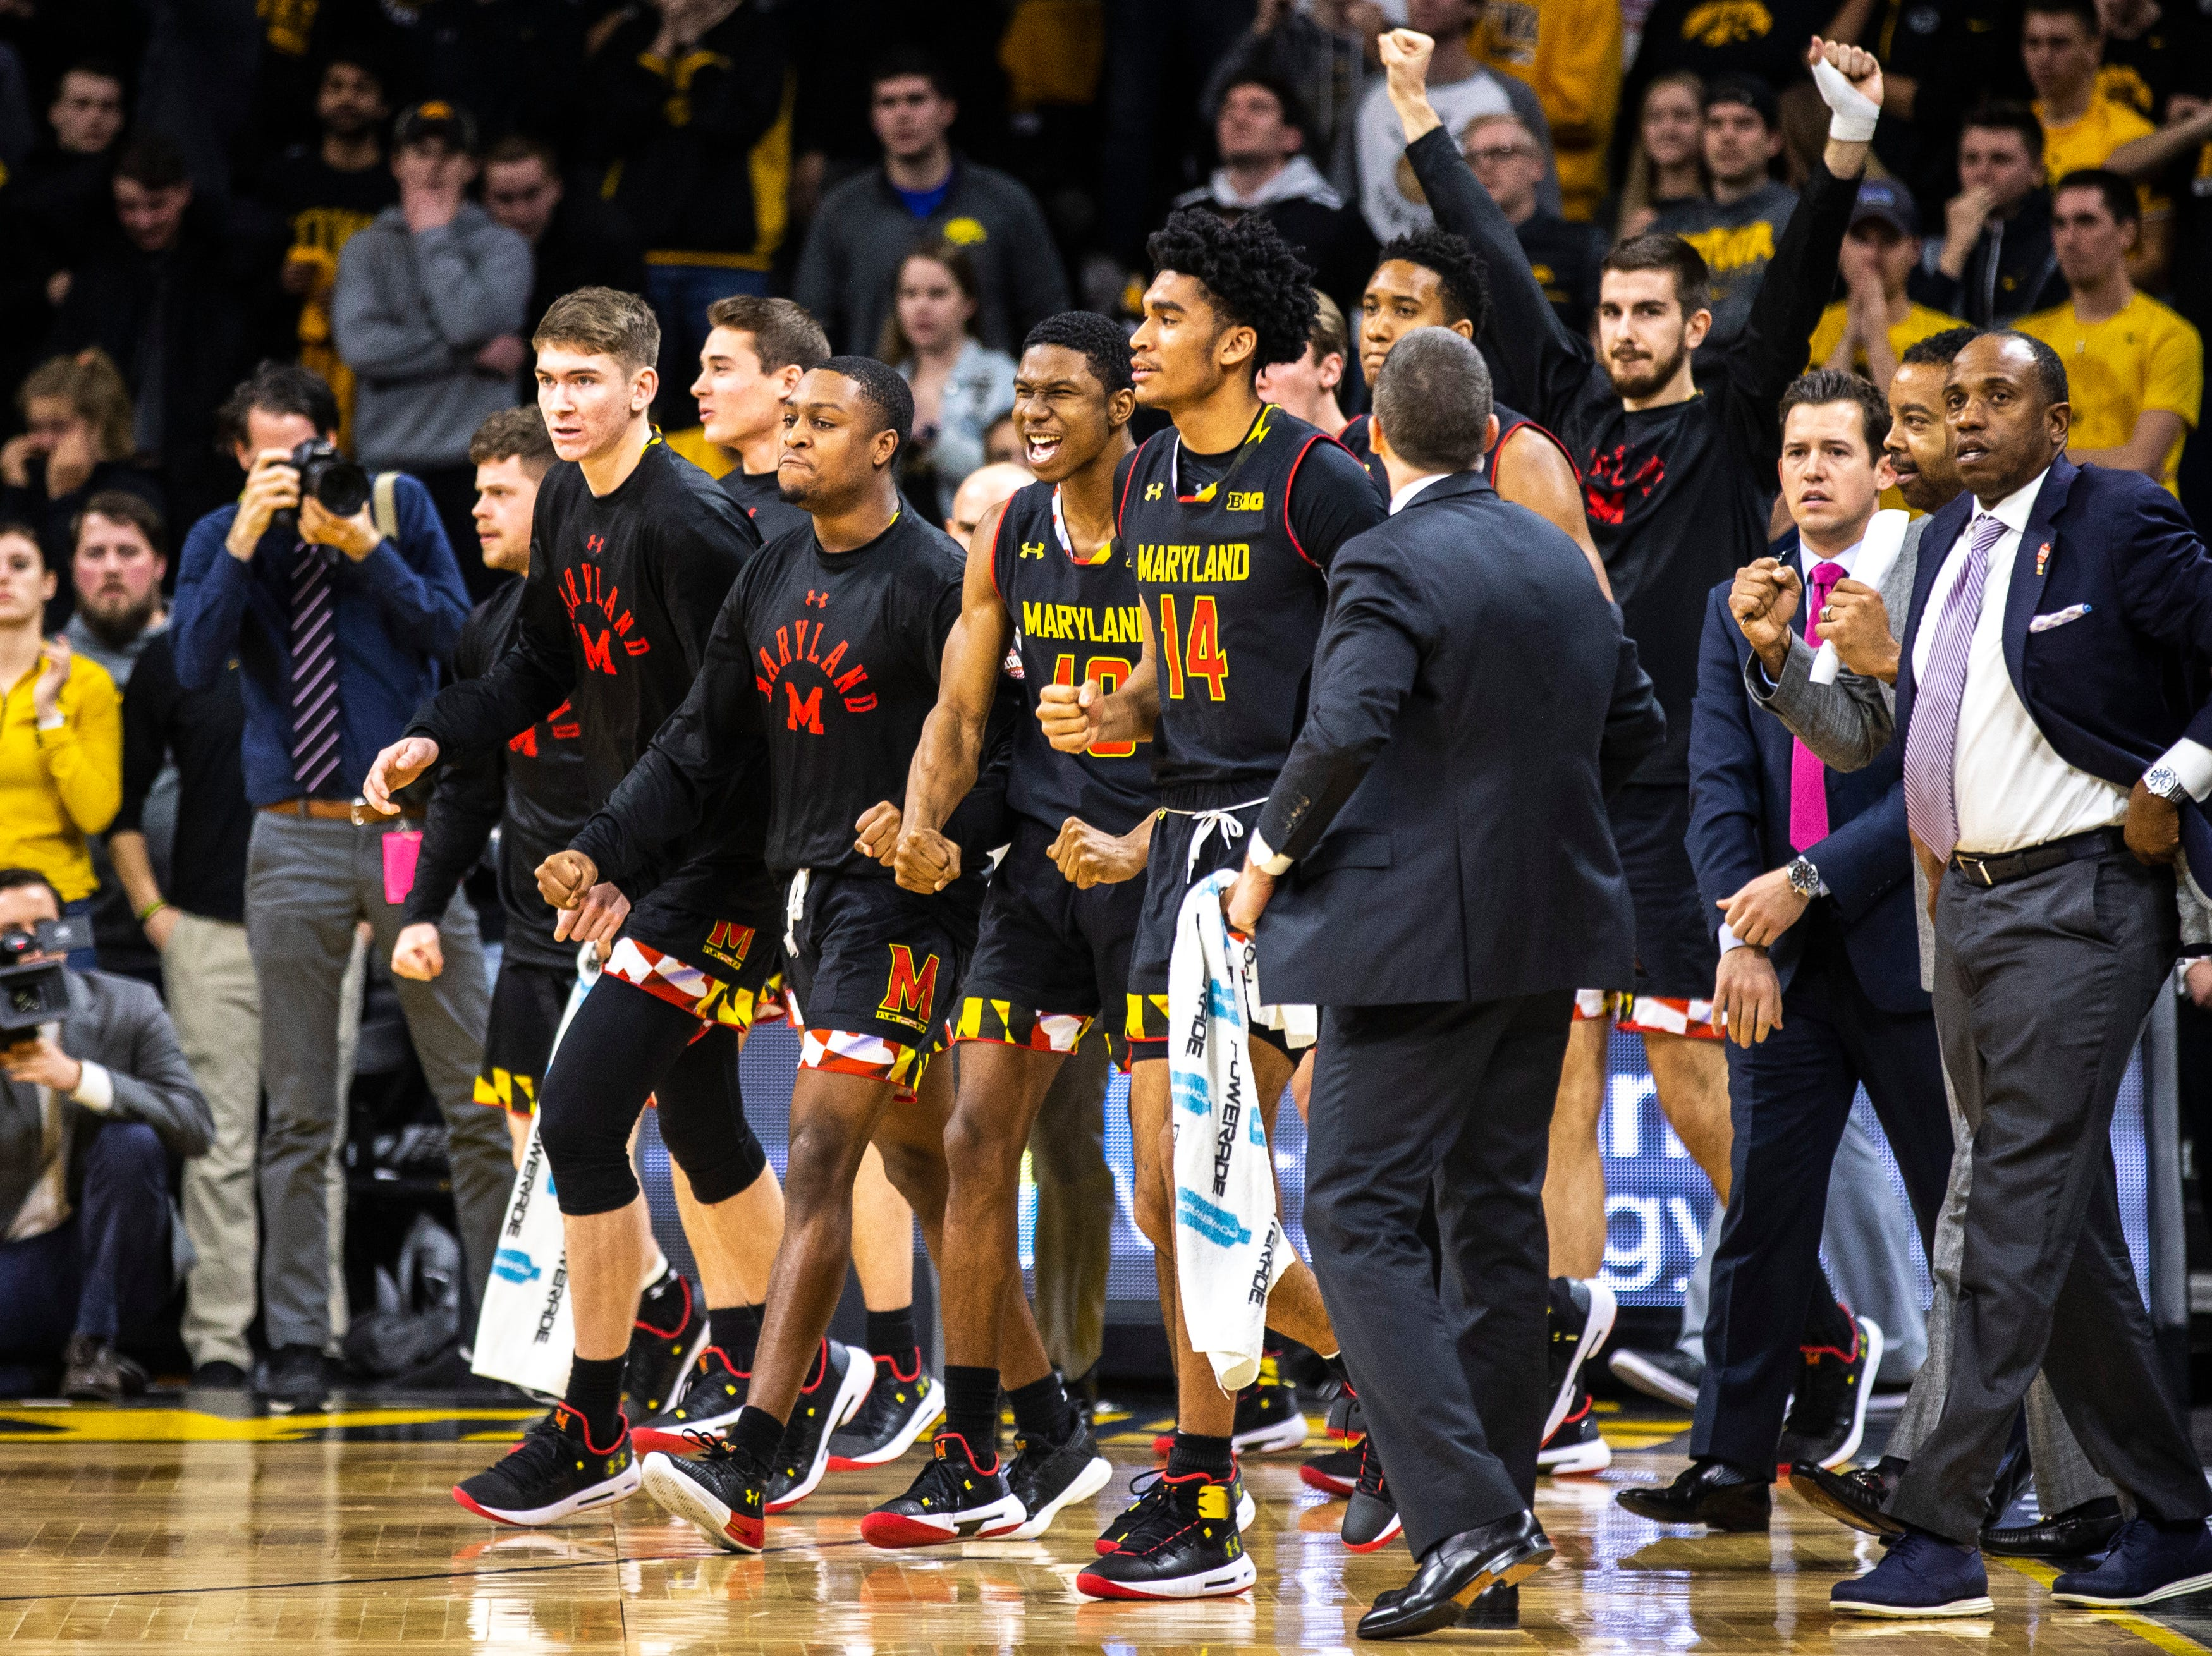 Maryland Terrapins bench reacts heading into a timeout during a NCAA Big Ten Conference men's basketball game on Tuesday, Feb. 19, 2019 at Carver-Hawkeye Arena in Iowa City, Iowa.